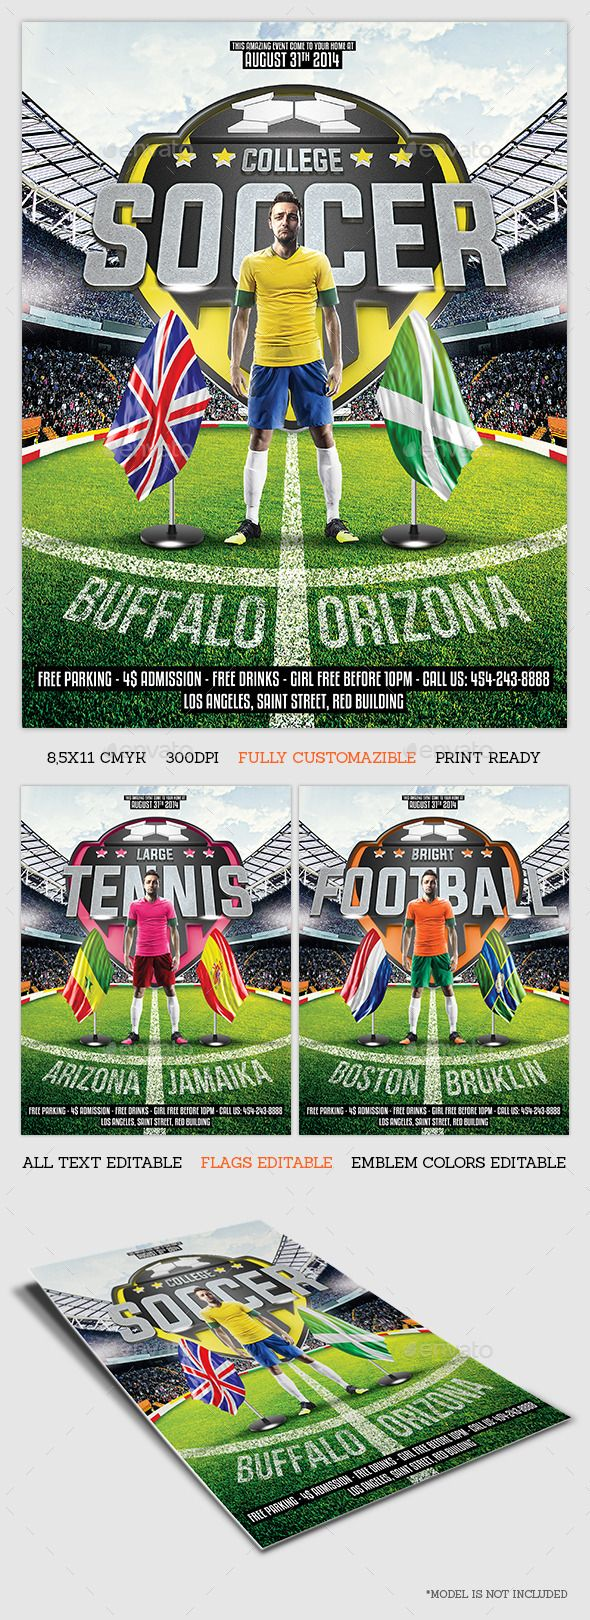 8 5x11 poster design - Sport Game Flyer Template By Becreative Sport Game Flyer Template8 5x11 Inches Size